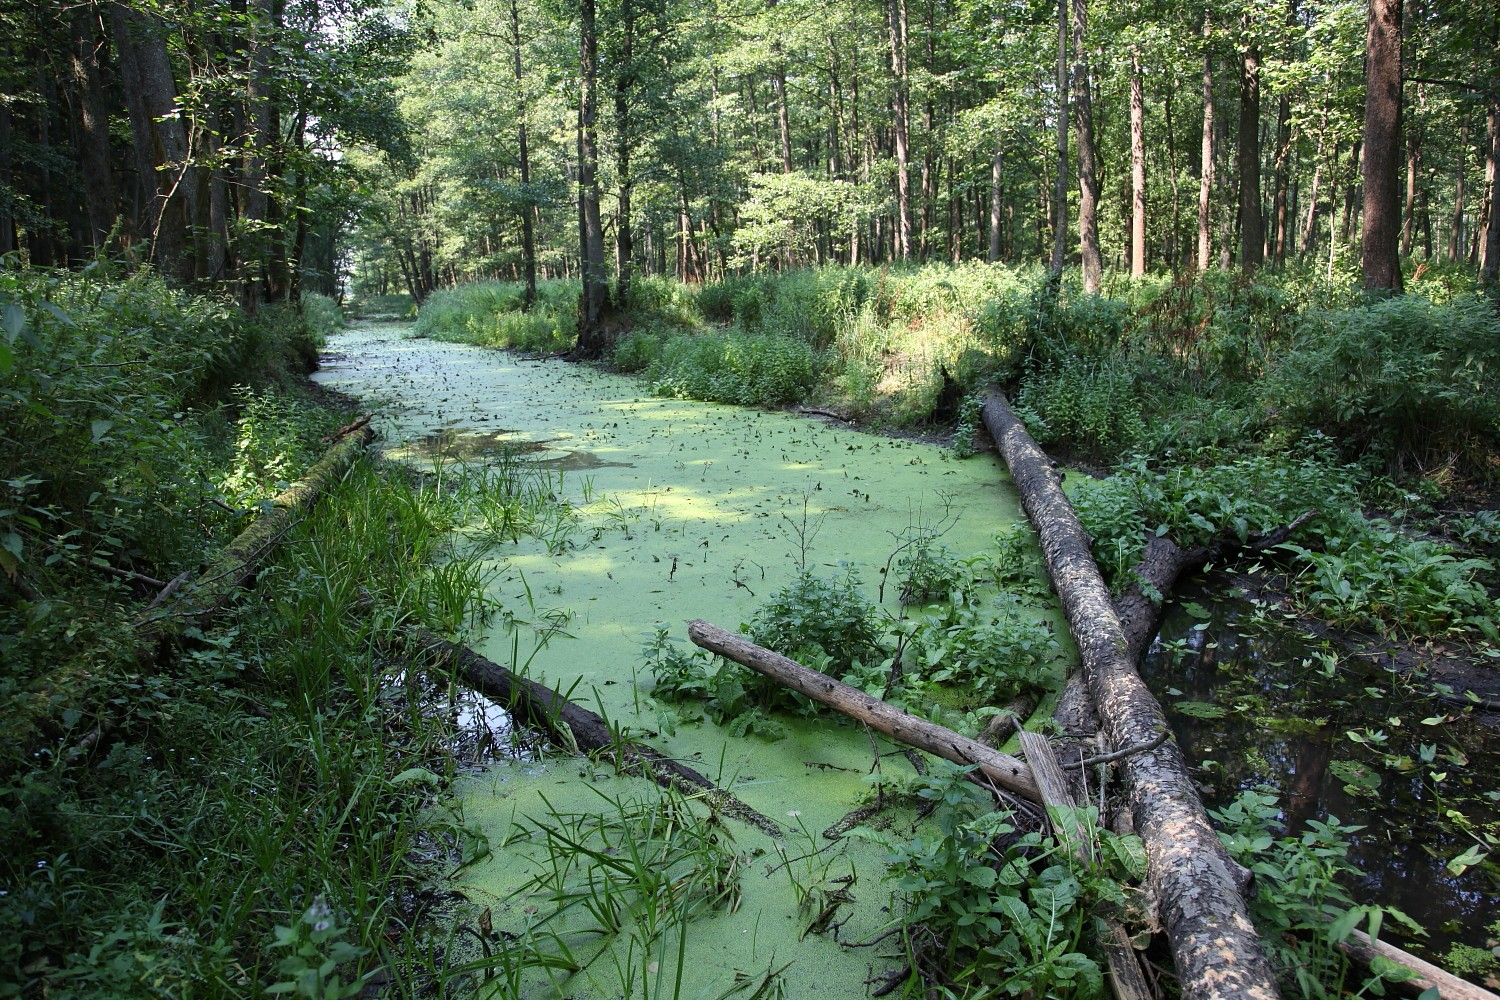 In the Bialowieza Primeval Forest there is a lot of small sylvan rivers and creeks (photo by Sebastian R. Bielak)